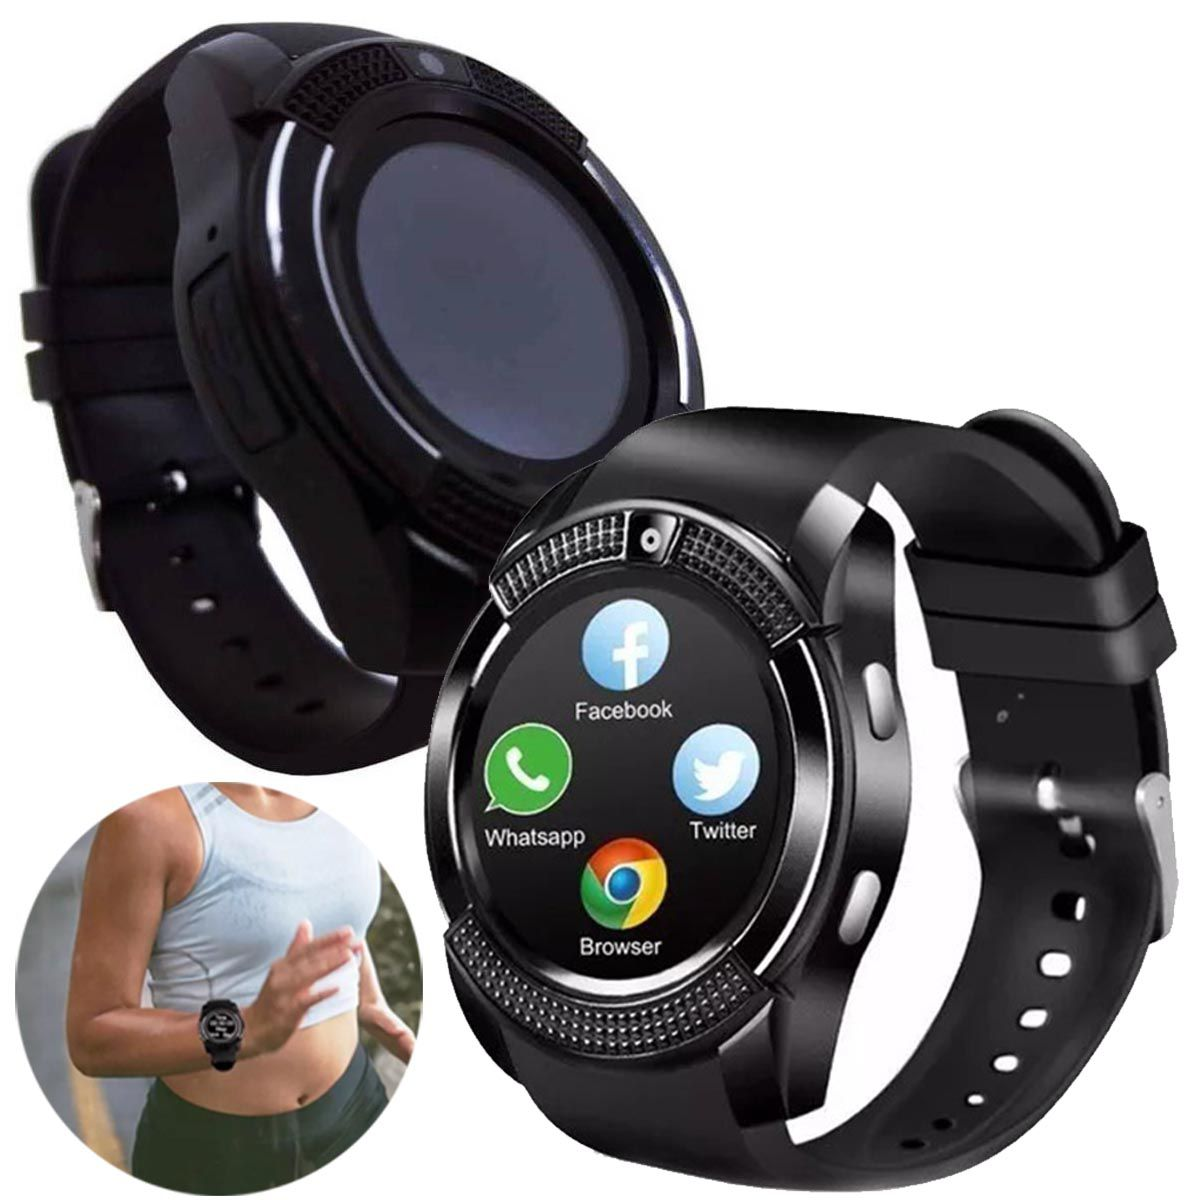 Relogio SmartWatch V8 Bluetooth Camera Celular Chip Cartao Musica Whatsapp (Smart Watch V8)